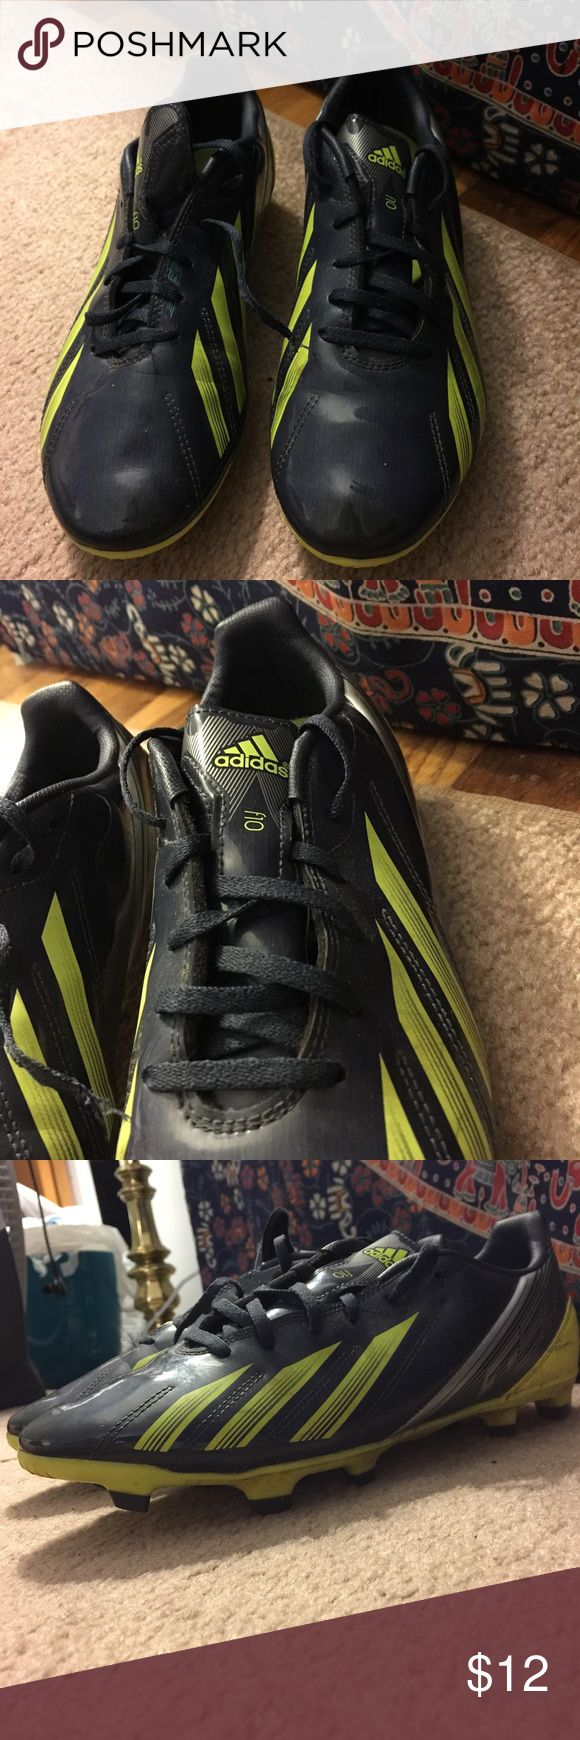 F10 Male Adidas Soccer Cleats ⚽️⚽️ Barely worn, wore them to a couple practices and one or two games found out they were way too small for me. Only damage is the one lace is torn off (from vacuum cleaner) can be replaced or negotiate the price! Adidas Shoes Athletic Shoes